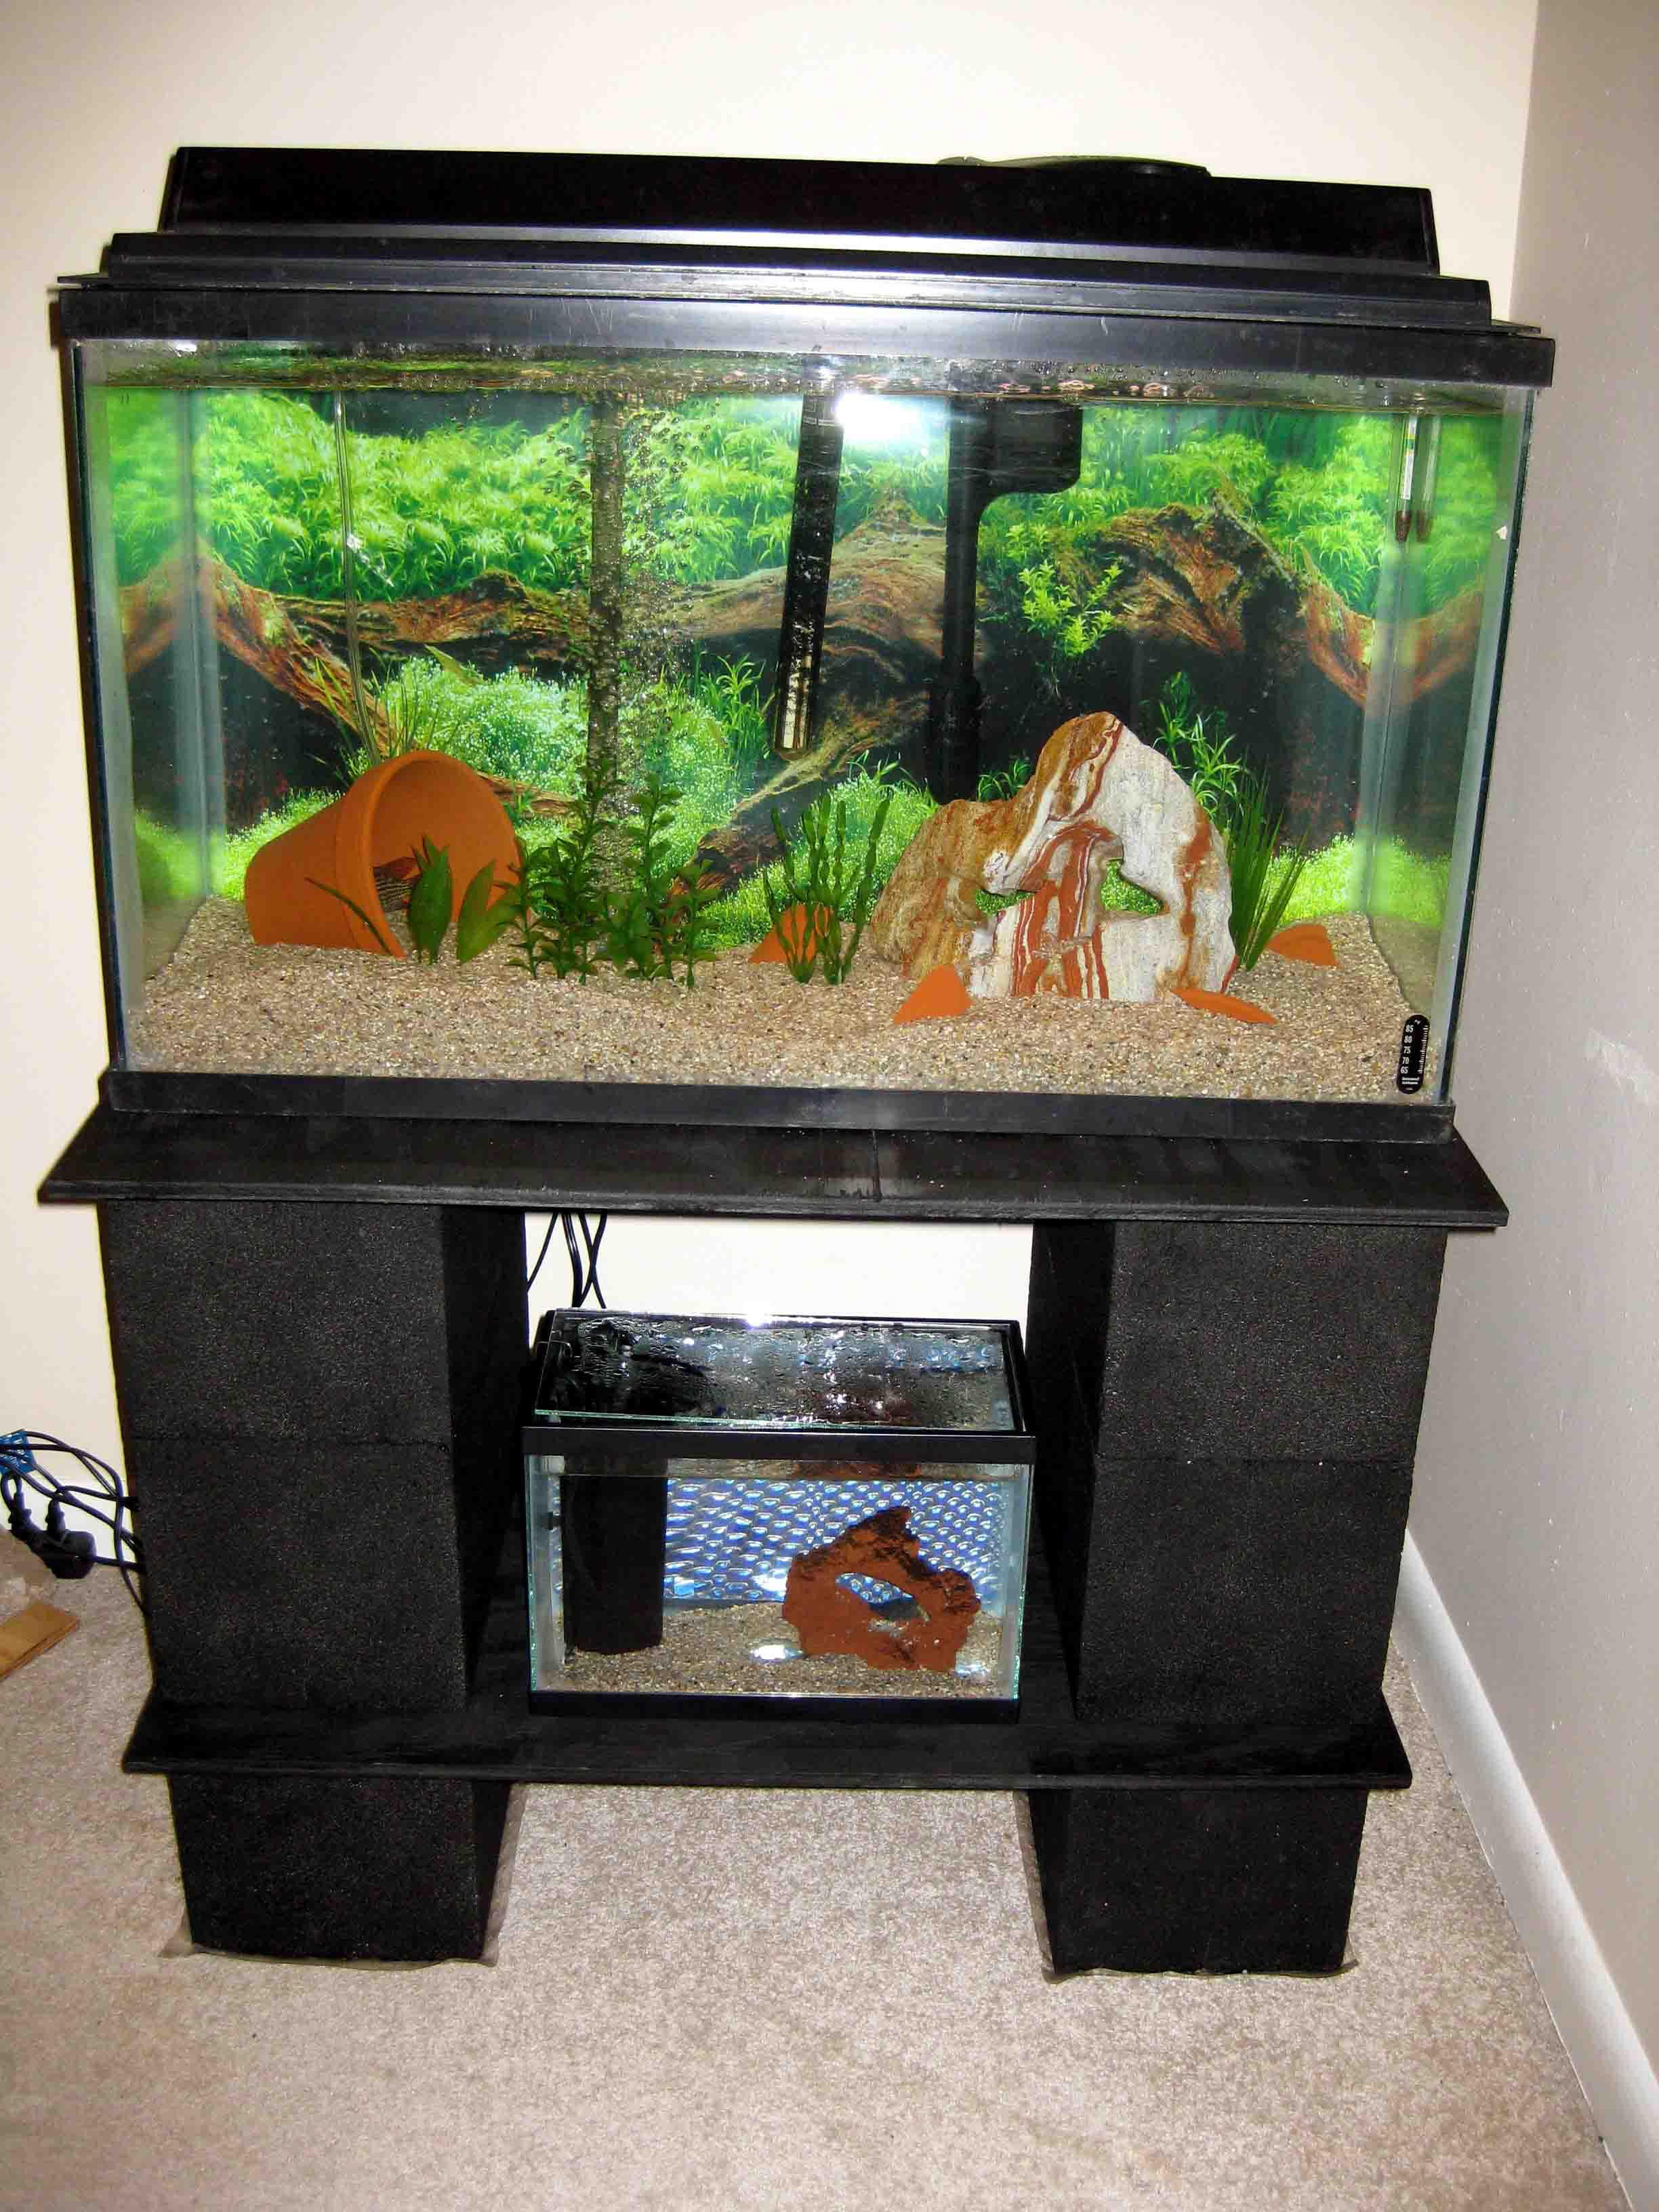 Fish tank tv stand - 5 Gallon Fish Aquarium Stand